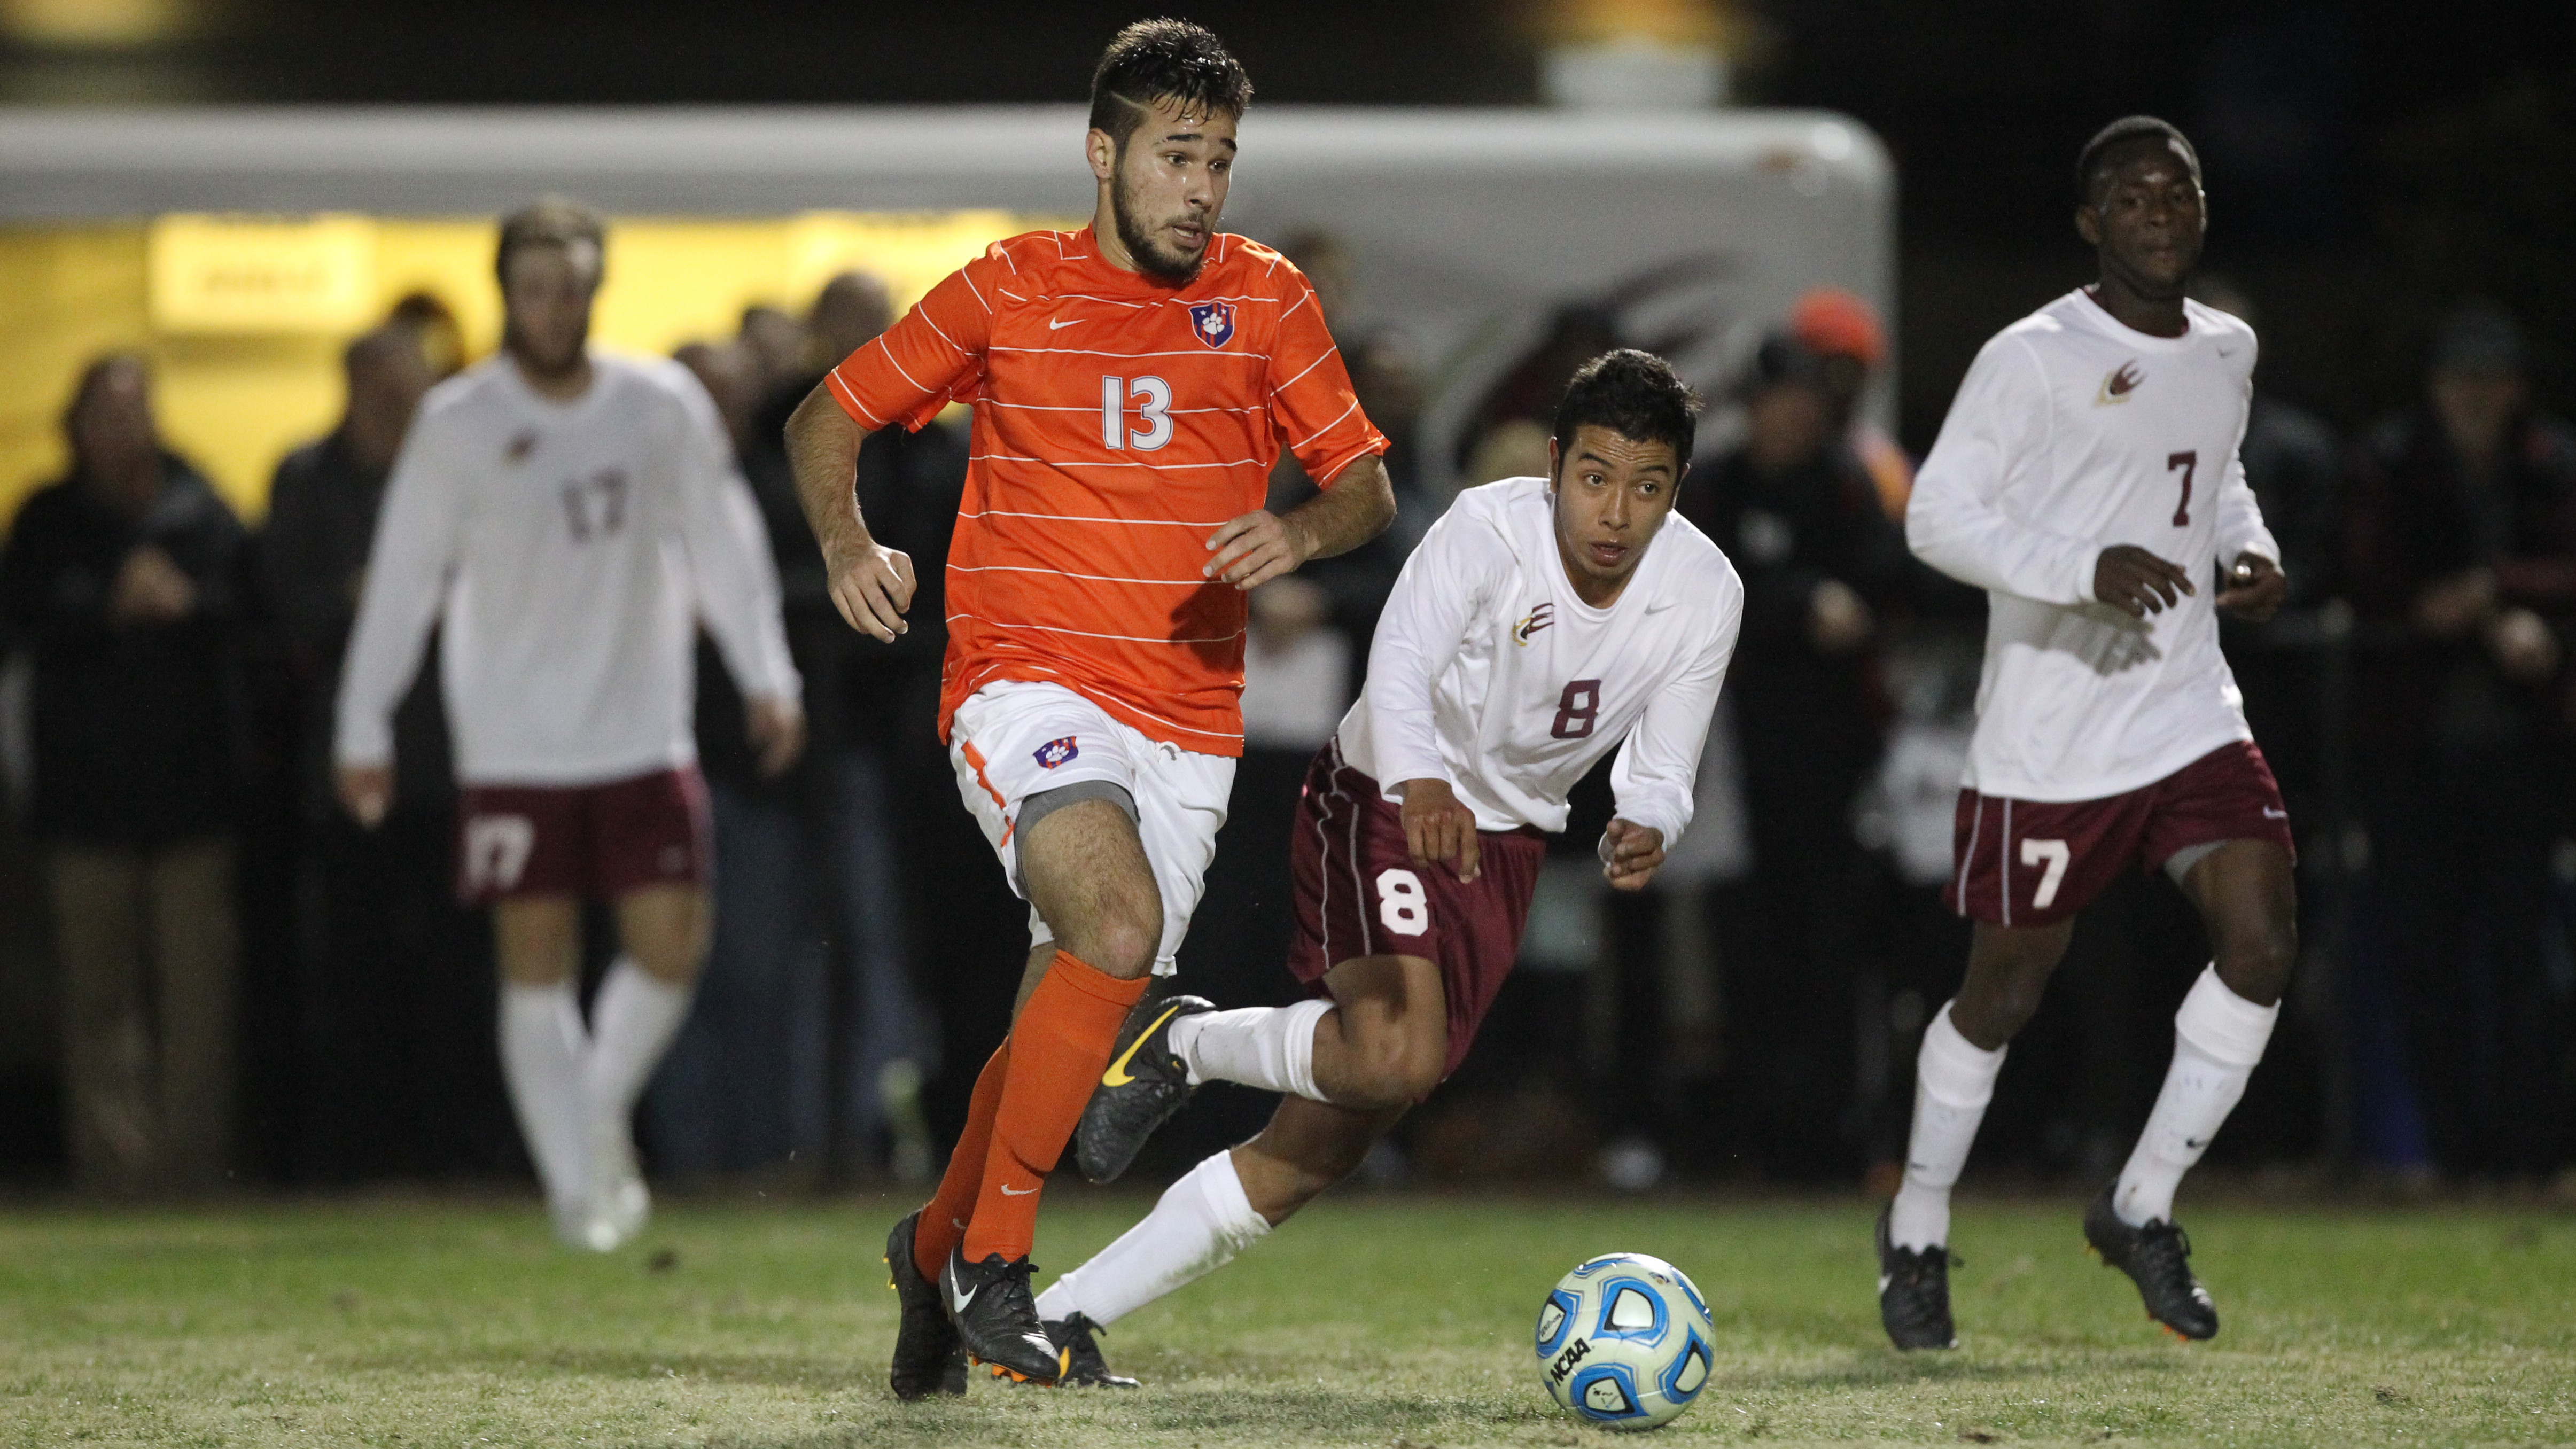 #24 Clemson and #18 Elon Play to 1-1 Tie, Phoenix Advance in PKs